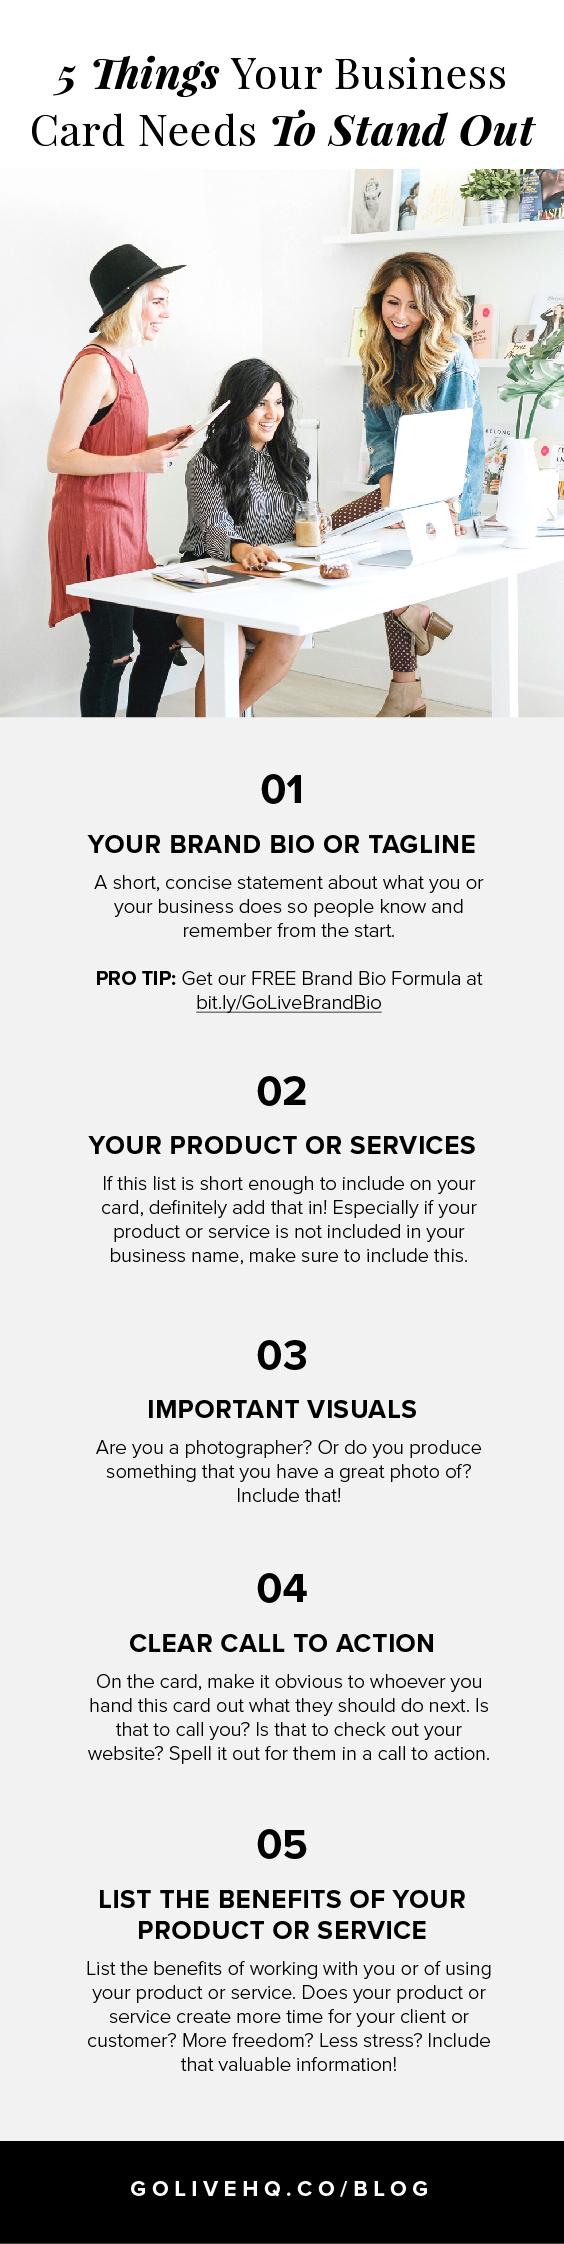 5 Things Your Business Card Needs To Stand Out | By Go Live HQ